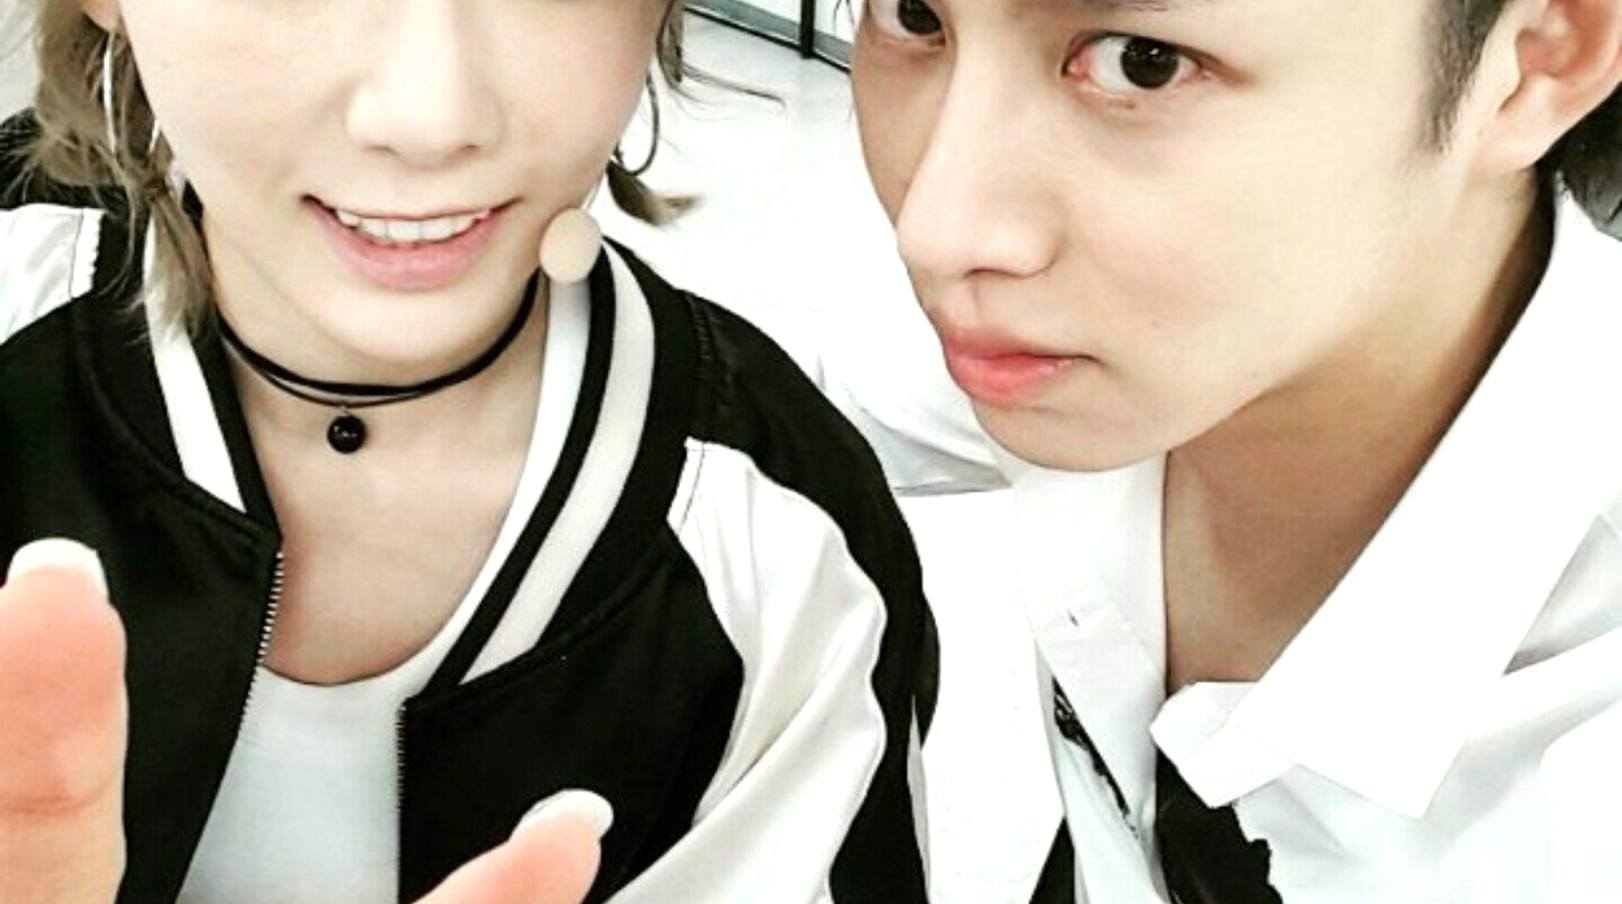 Yoona and heechul dating